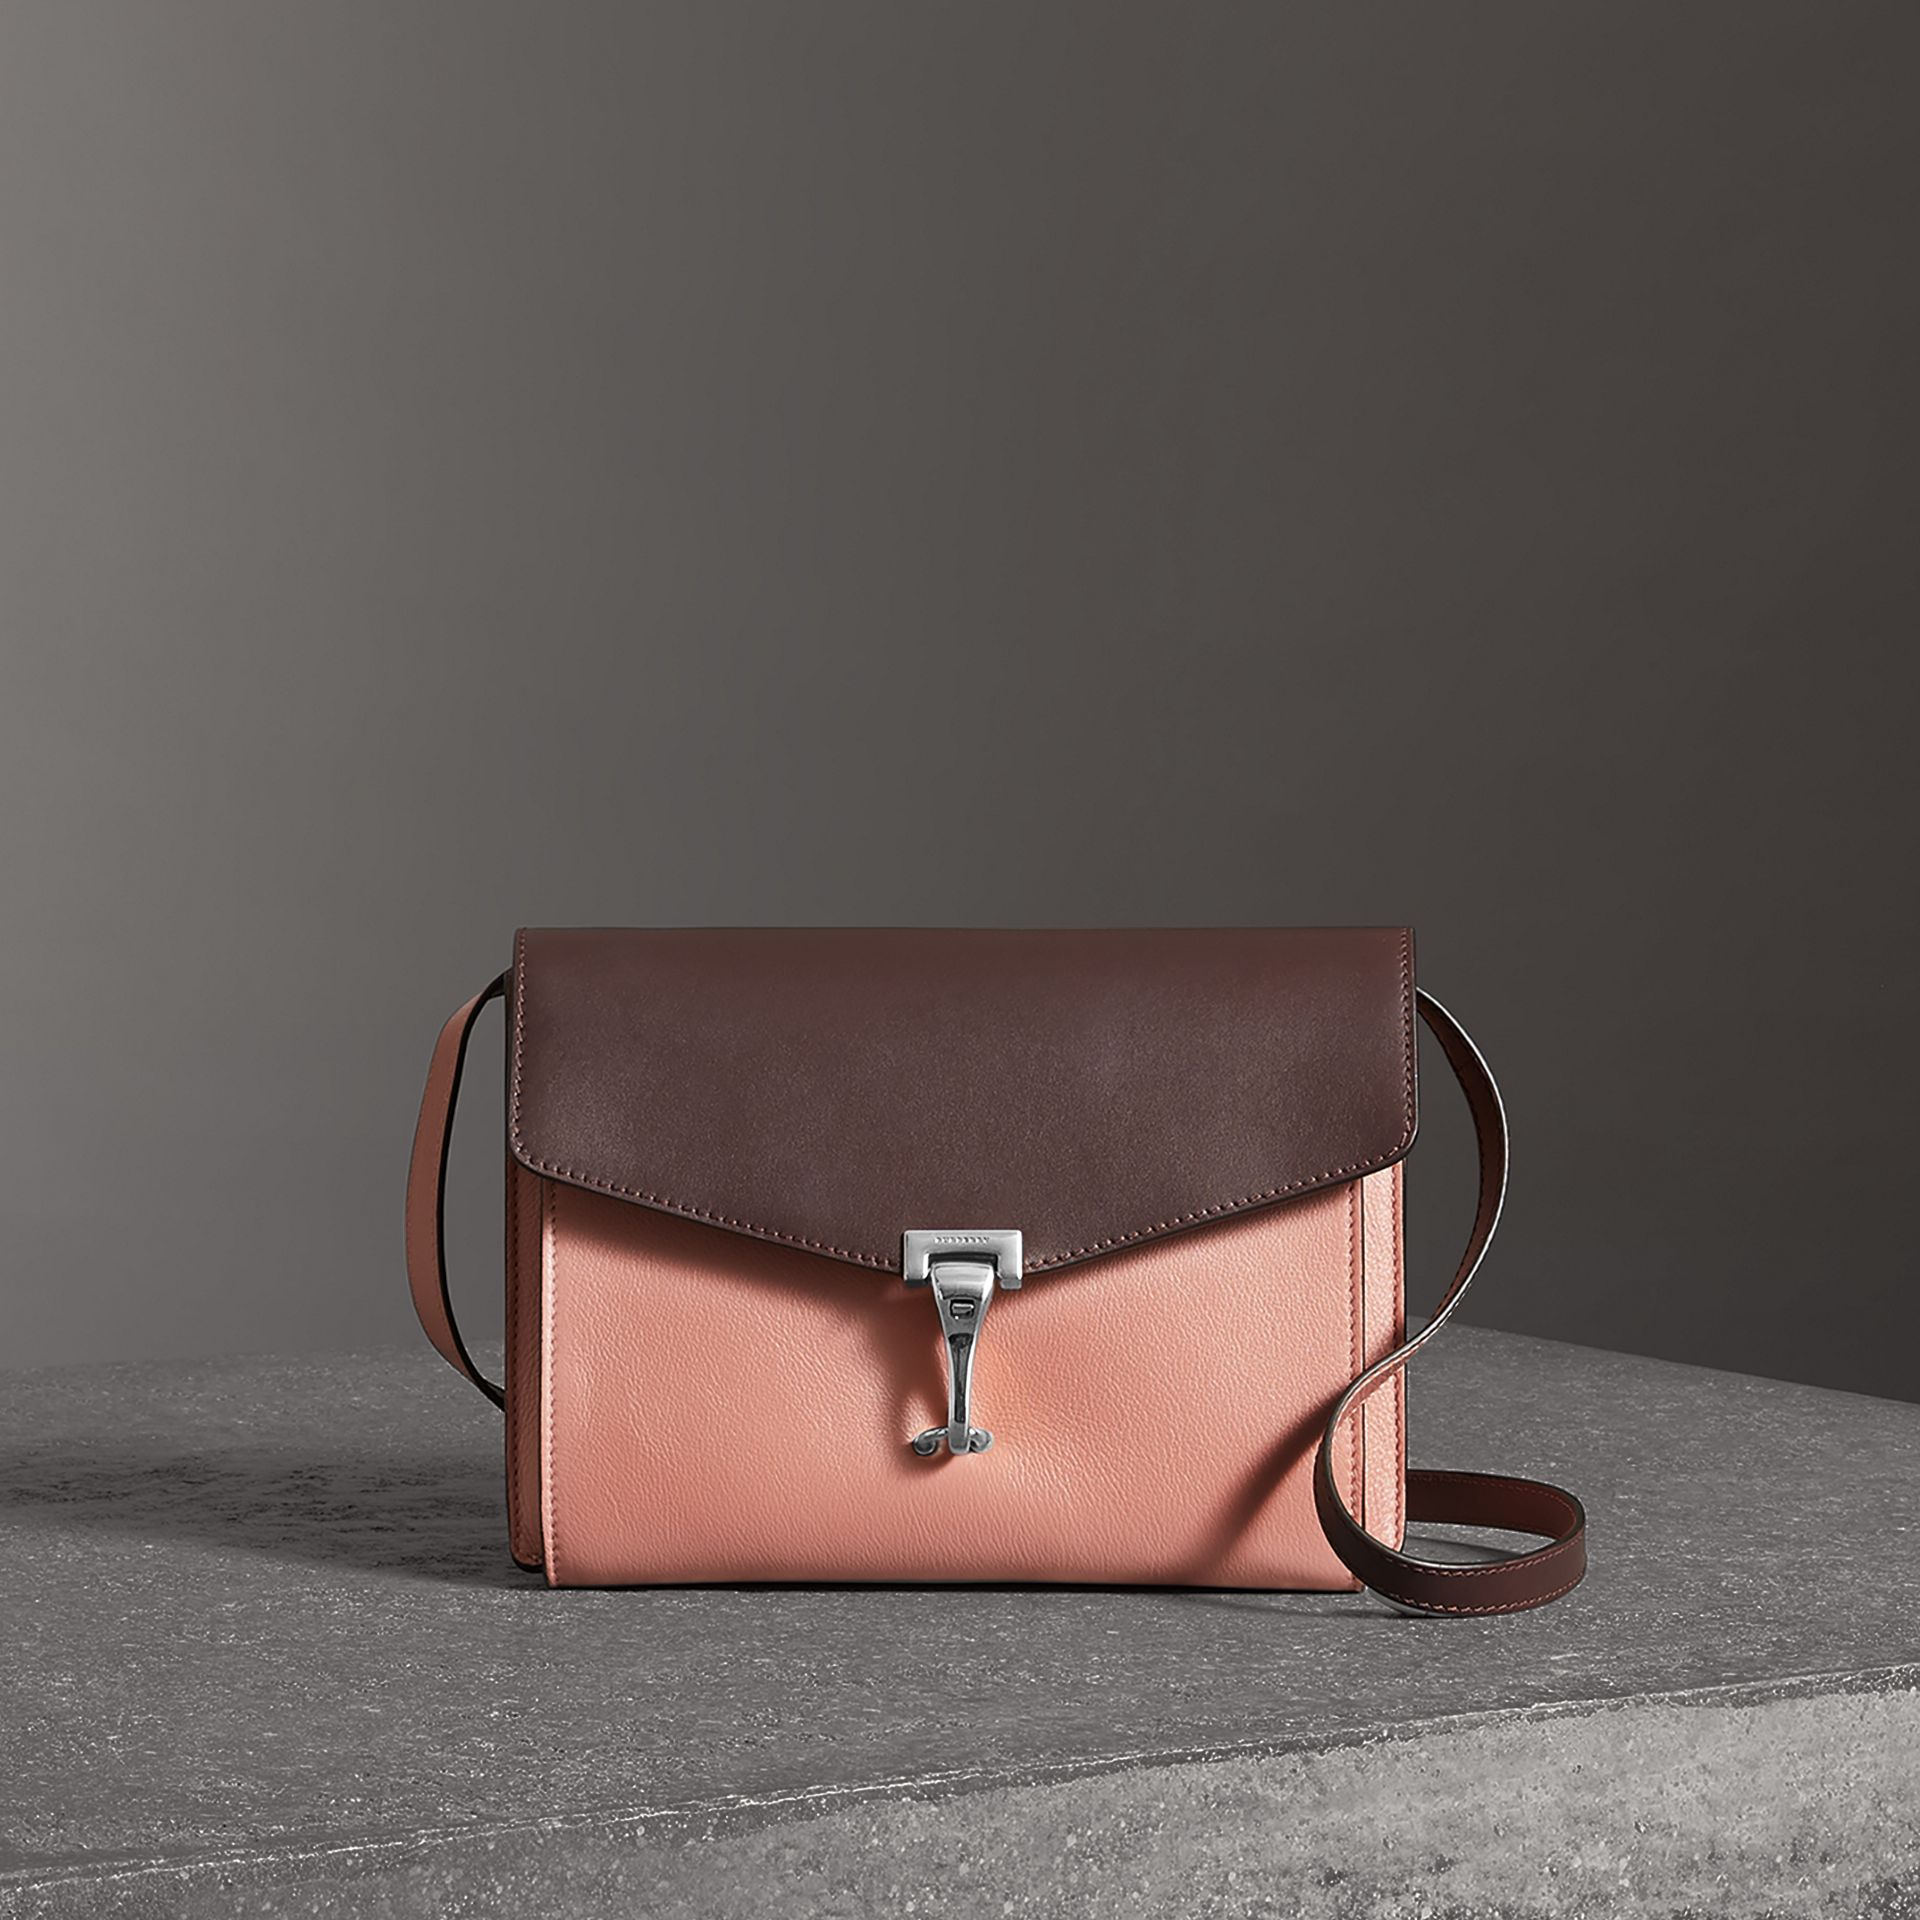 Two-tone Leather Crossbody Bag in Dusty Rose/deep Claret - Women | Burberry United Kingdom - gallery image 0